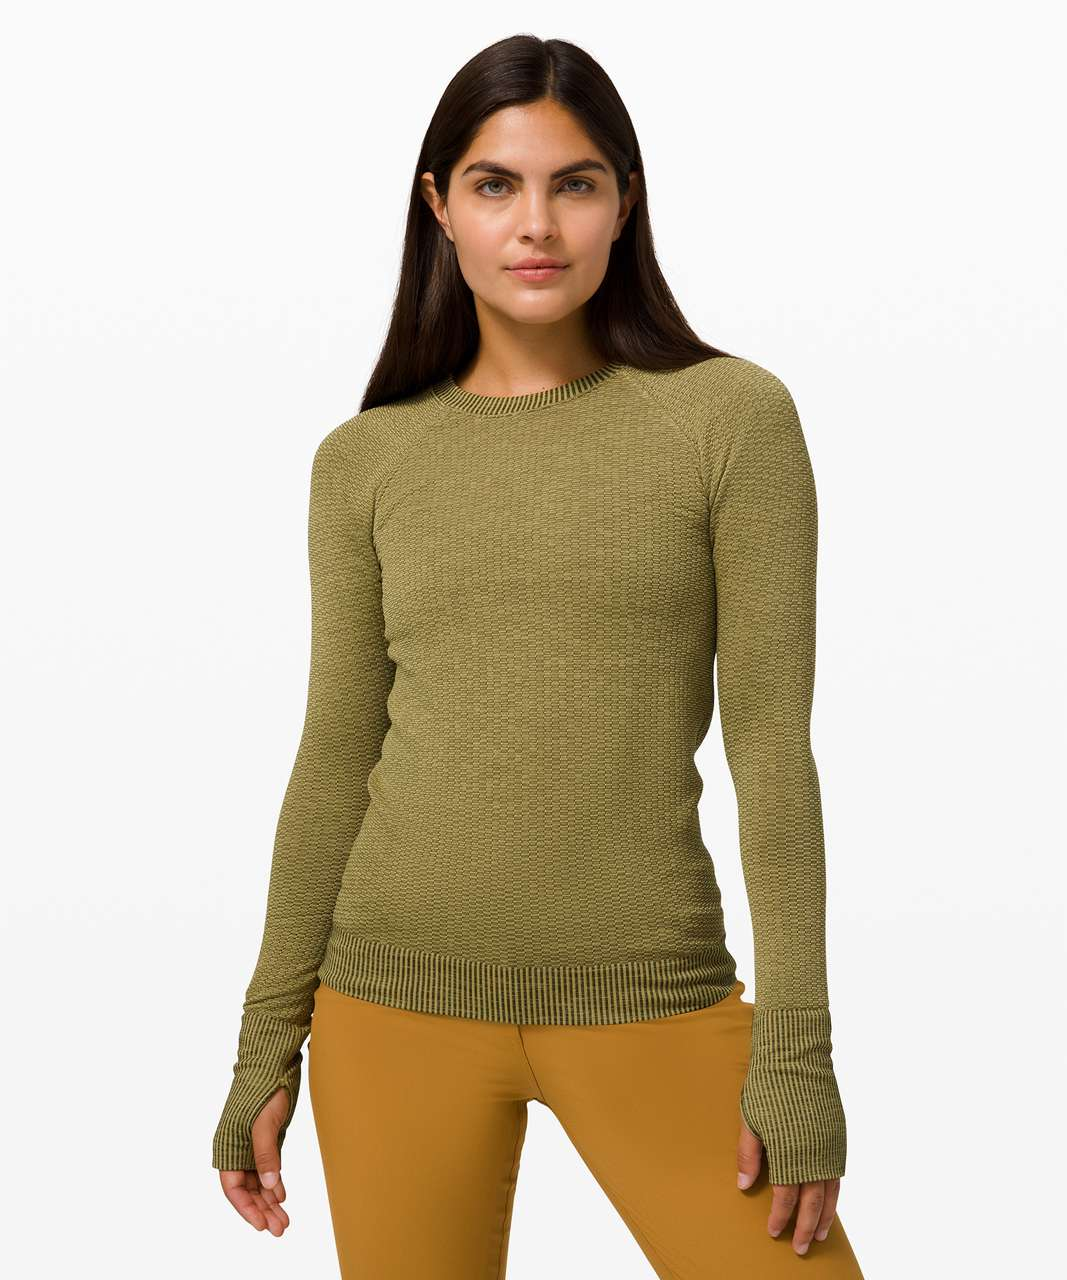 Lululemon Rest Less Pullover *Bubble Dot - Bubble Dot Hazel Green / Moss Green